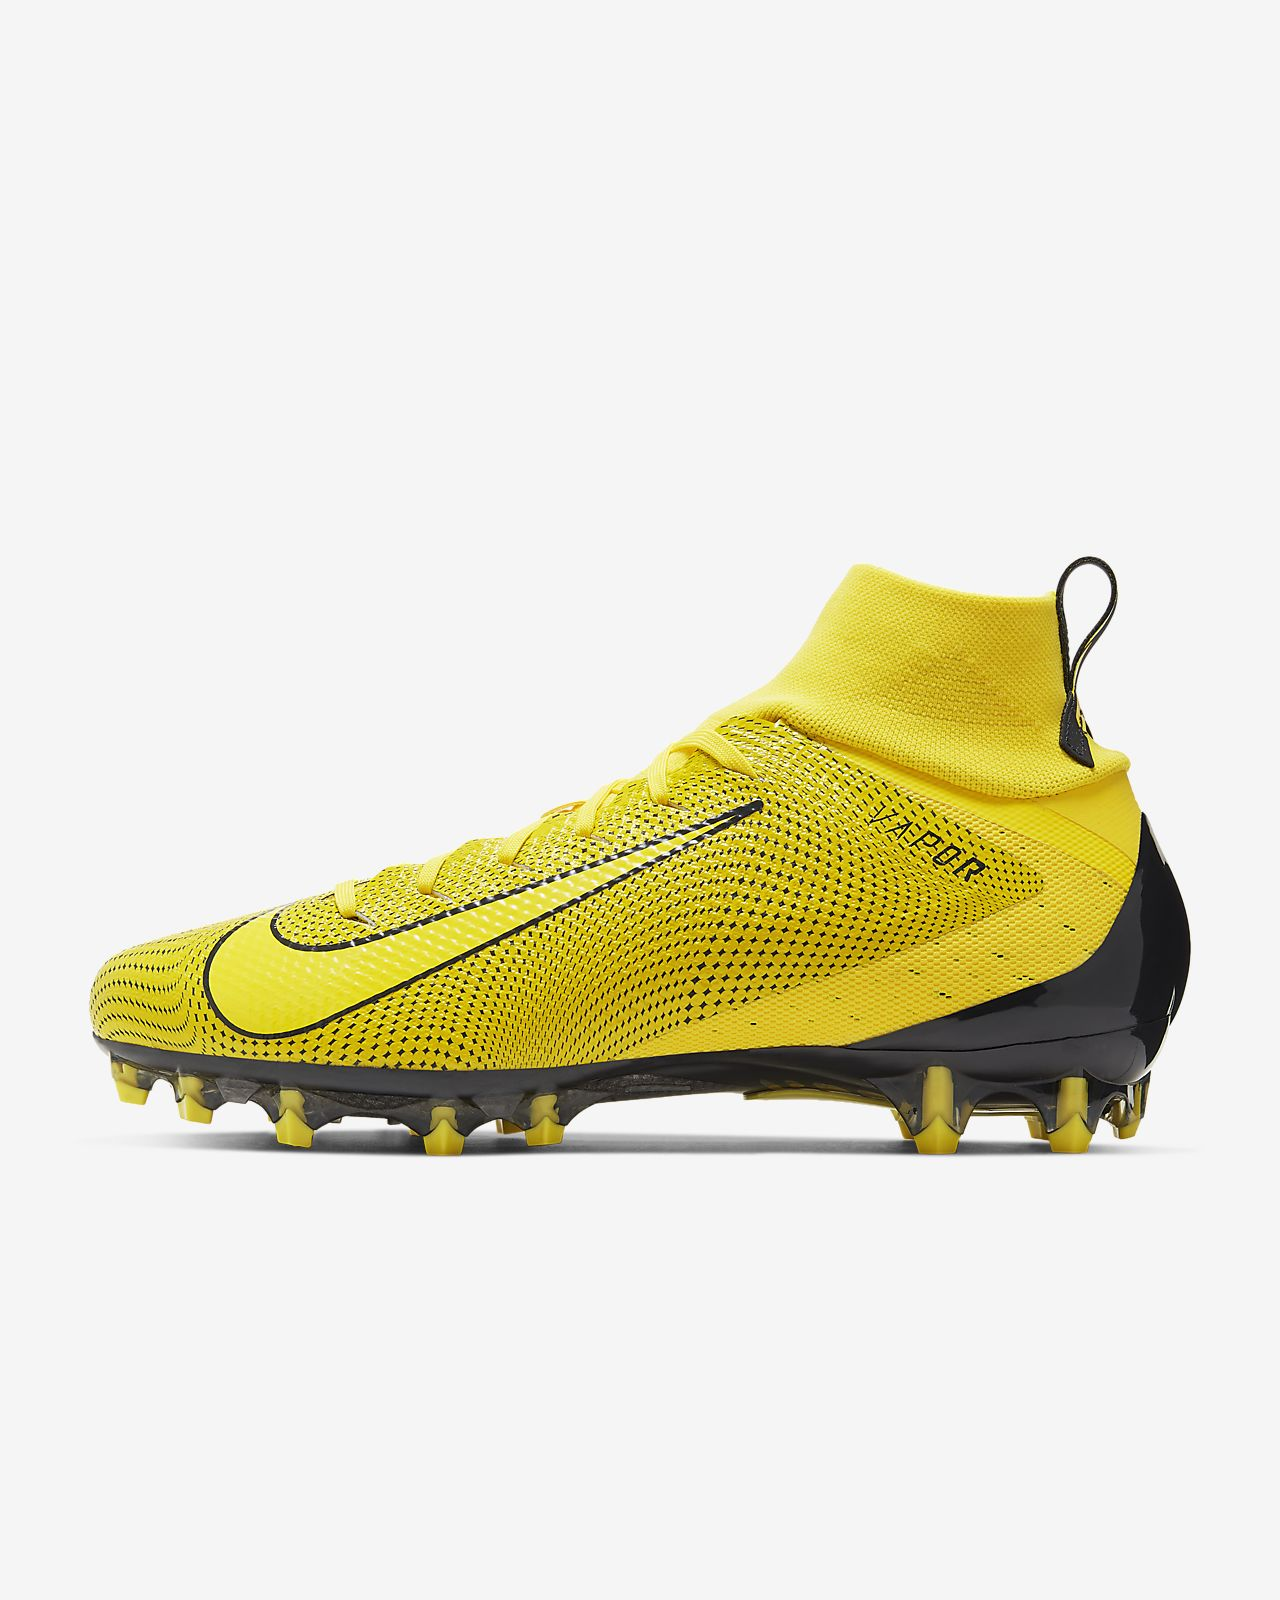 new style e04eb b6e6f ... Nike Vapor Untouchable 3 Pro Football Cleat